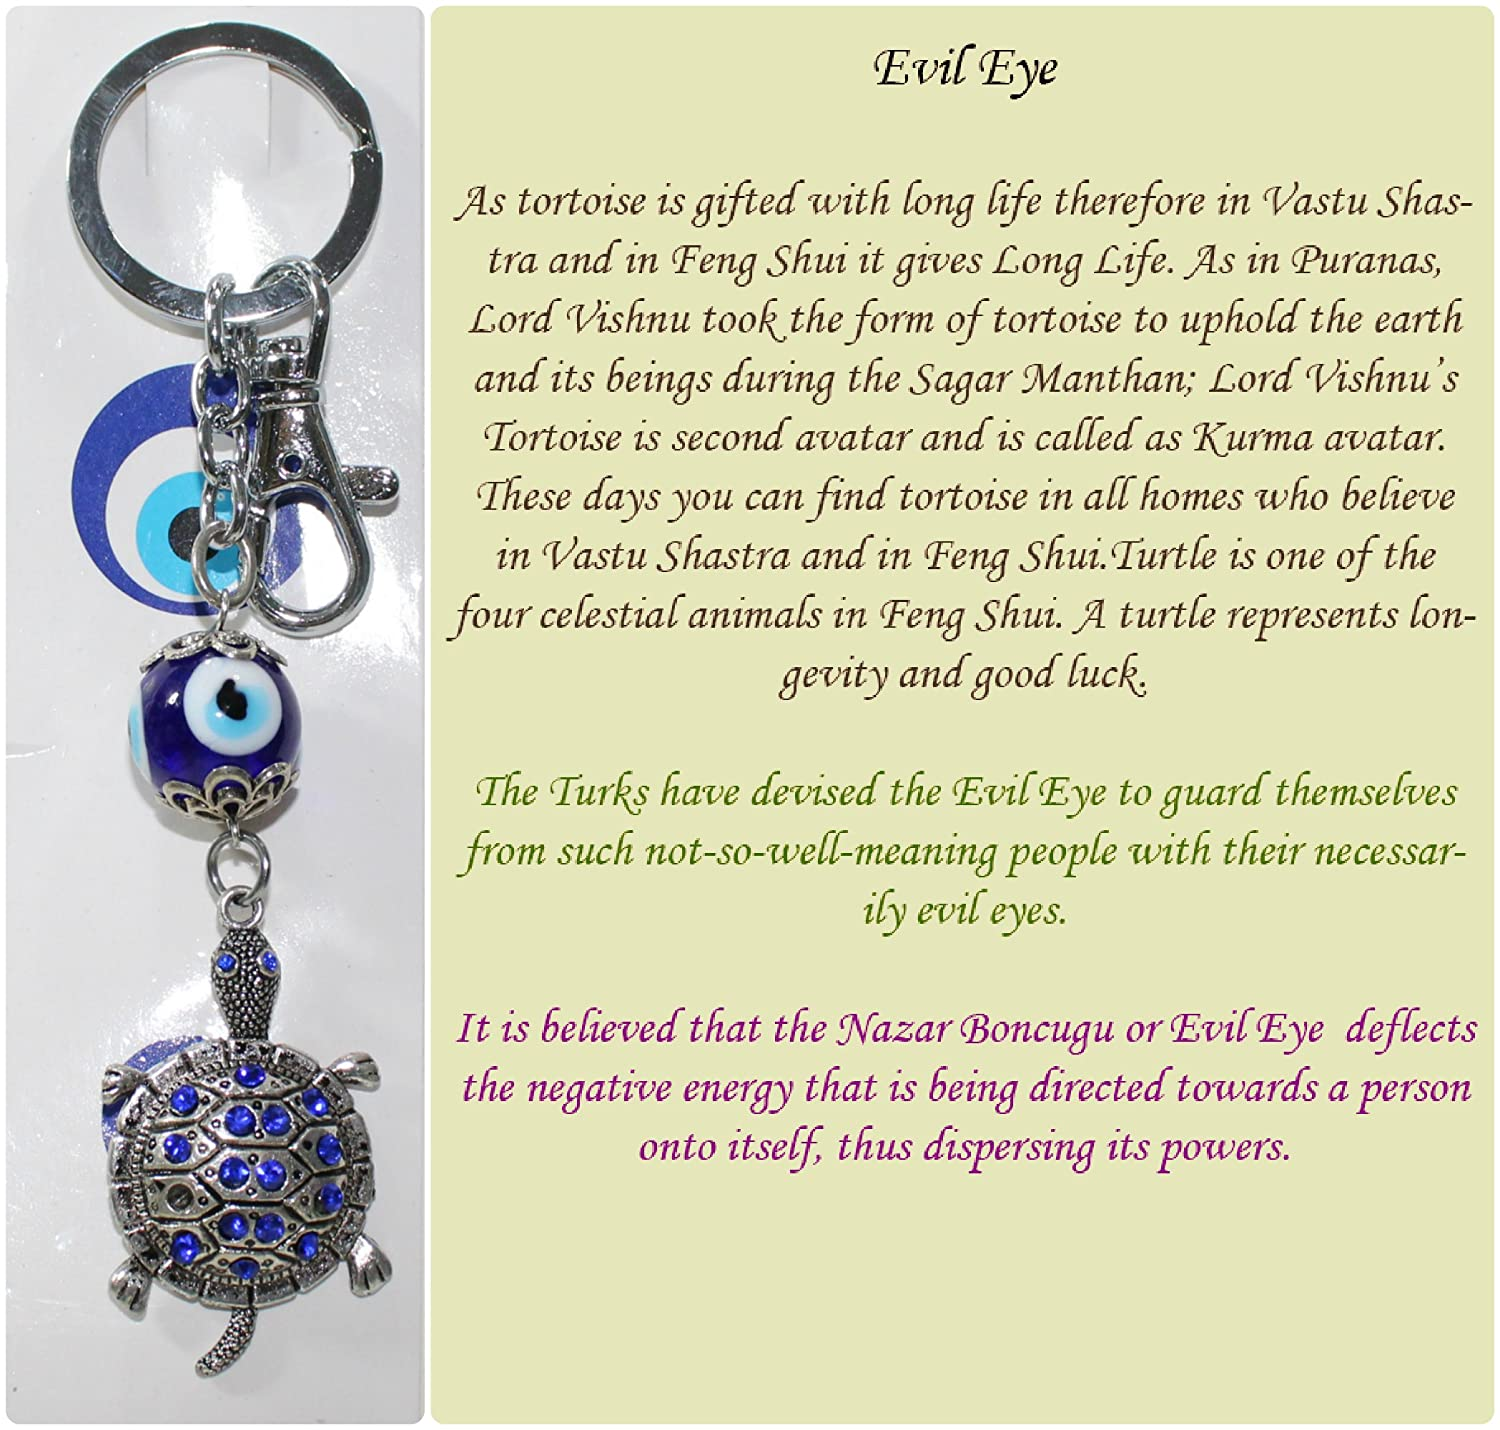 Fcs tortoise key ring with turkish evil eye to protect amazon fcs tortoise key ring with turkish evil eye to protect amazon electronics buycottarizona Image collections